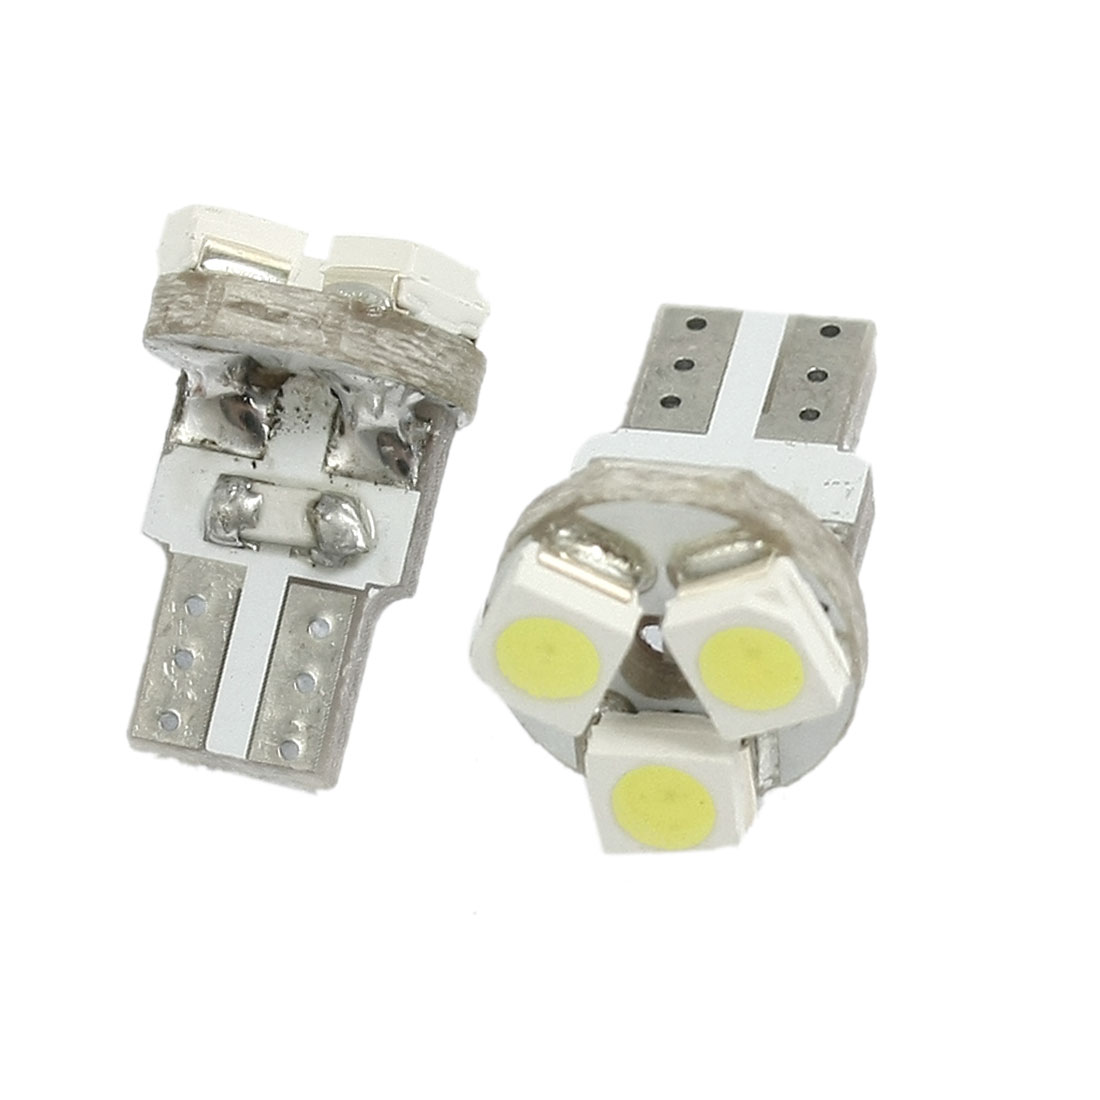 2 Pcs T5 Wedge White 1210 3 SMD LED Light Round Panel Bulb Lamp